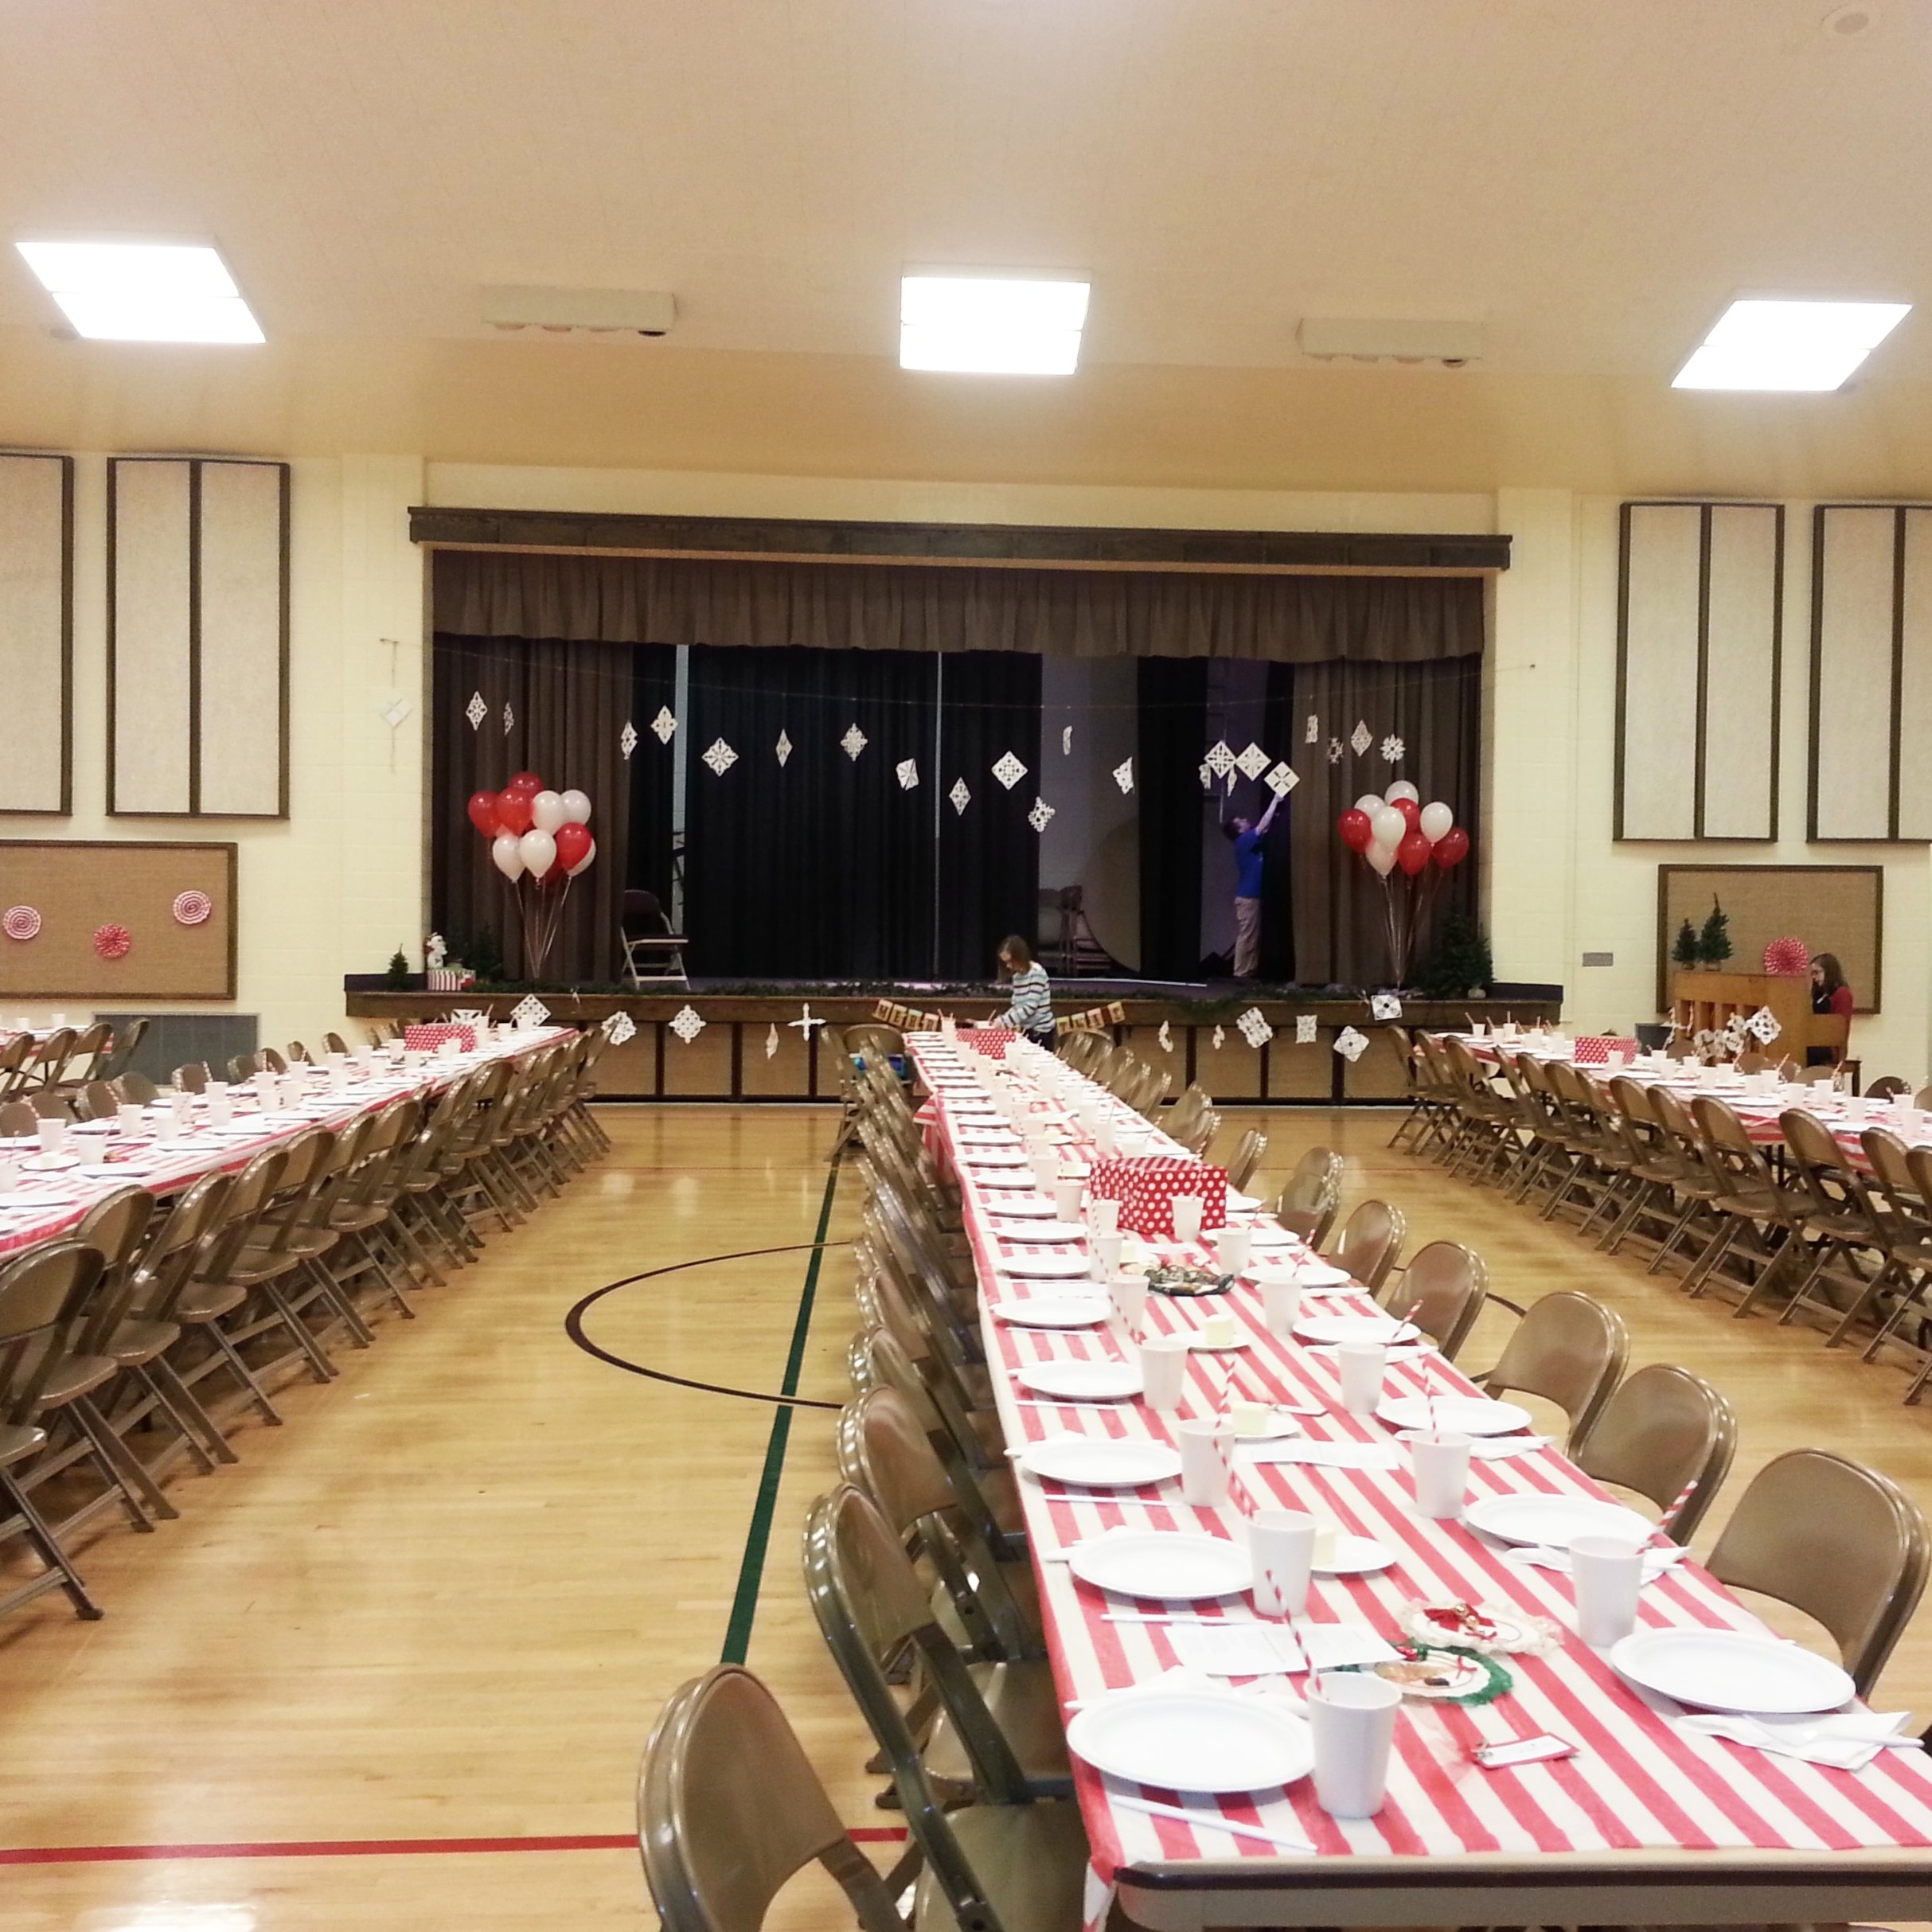 10 Fashionable Lds Ward Christmas Party Ideas lds ward christmas party let him in positively mommy 1 2020